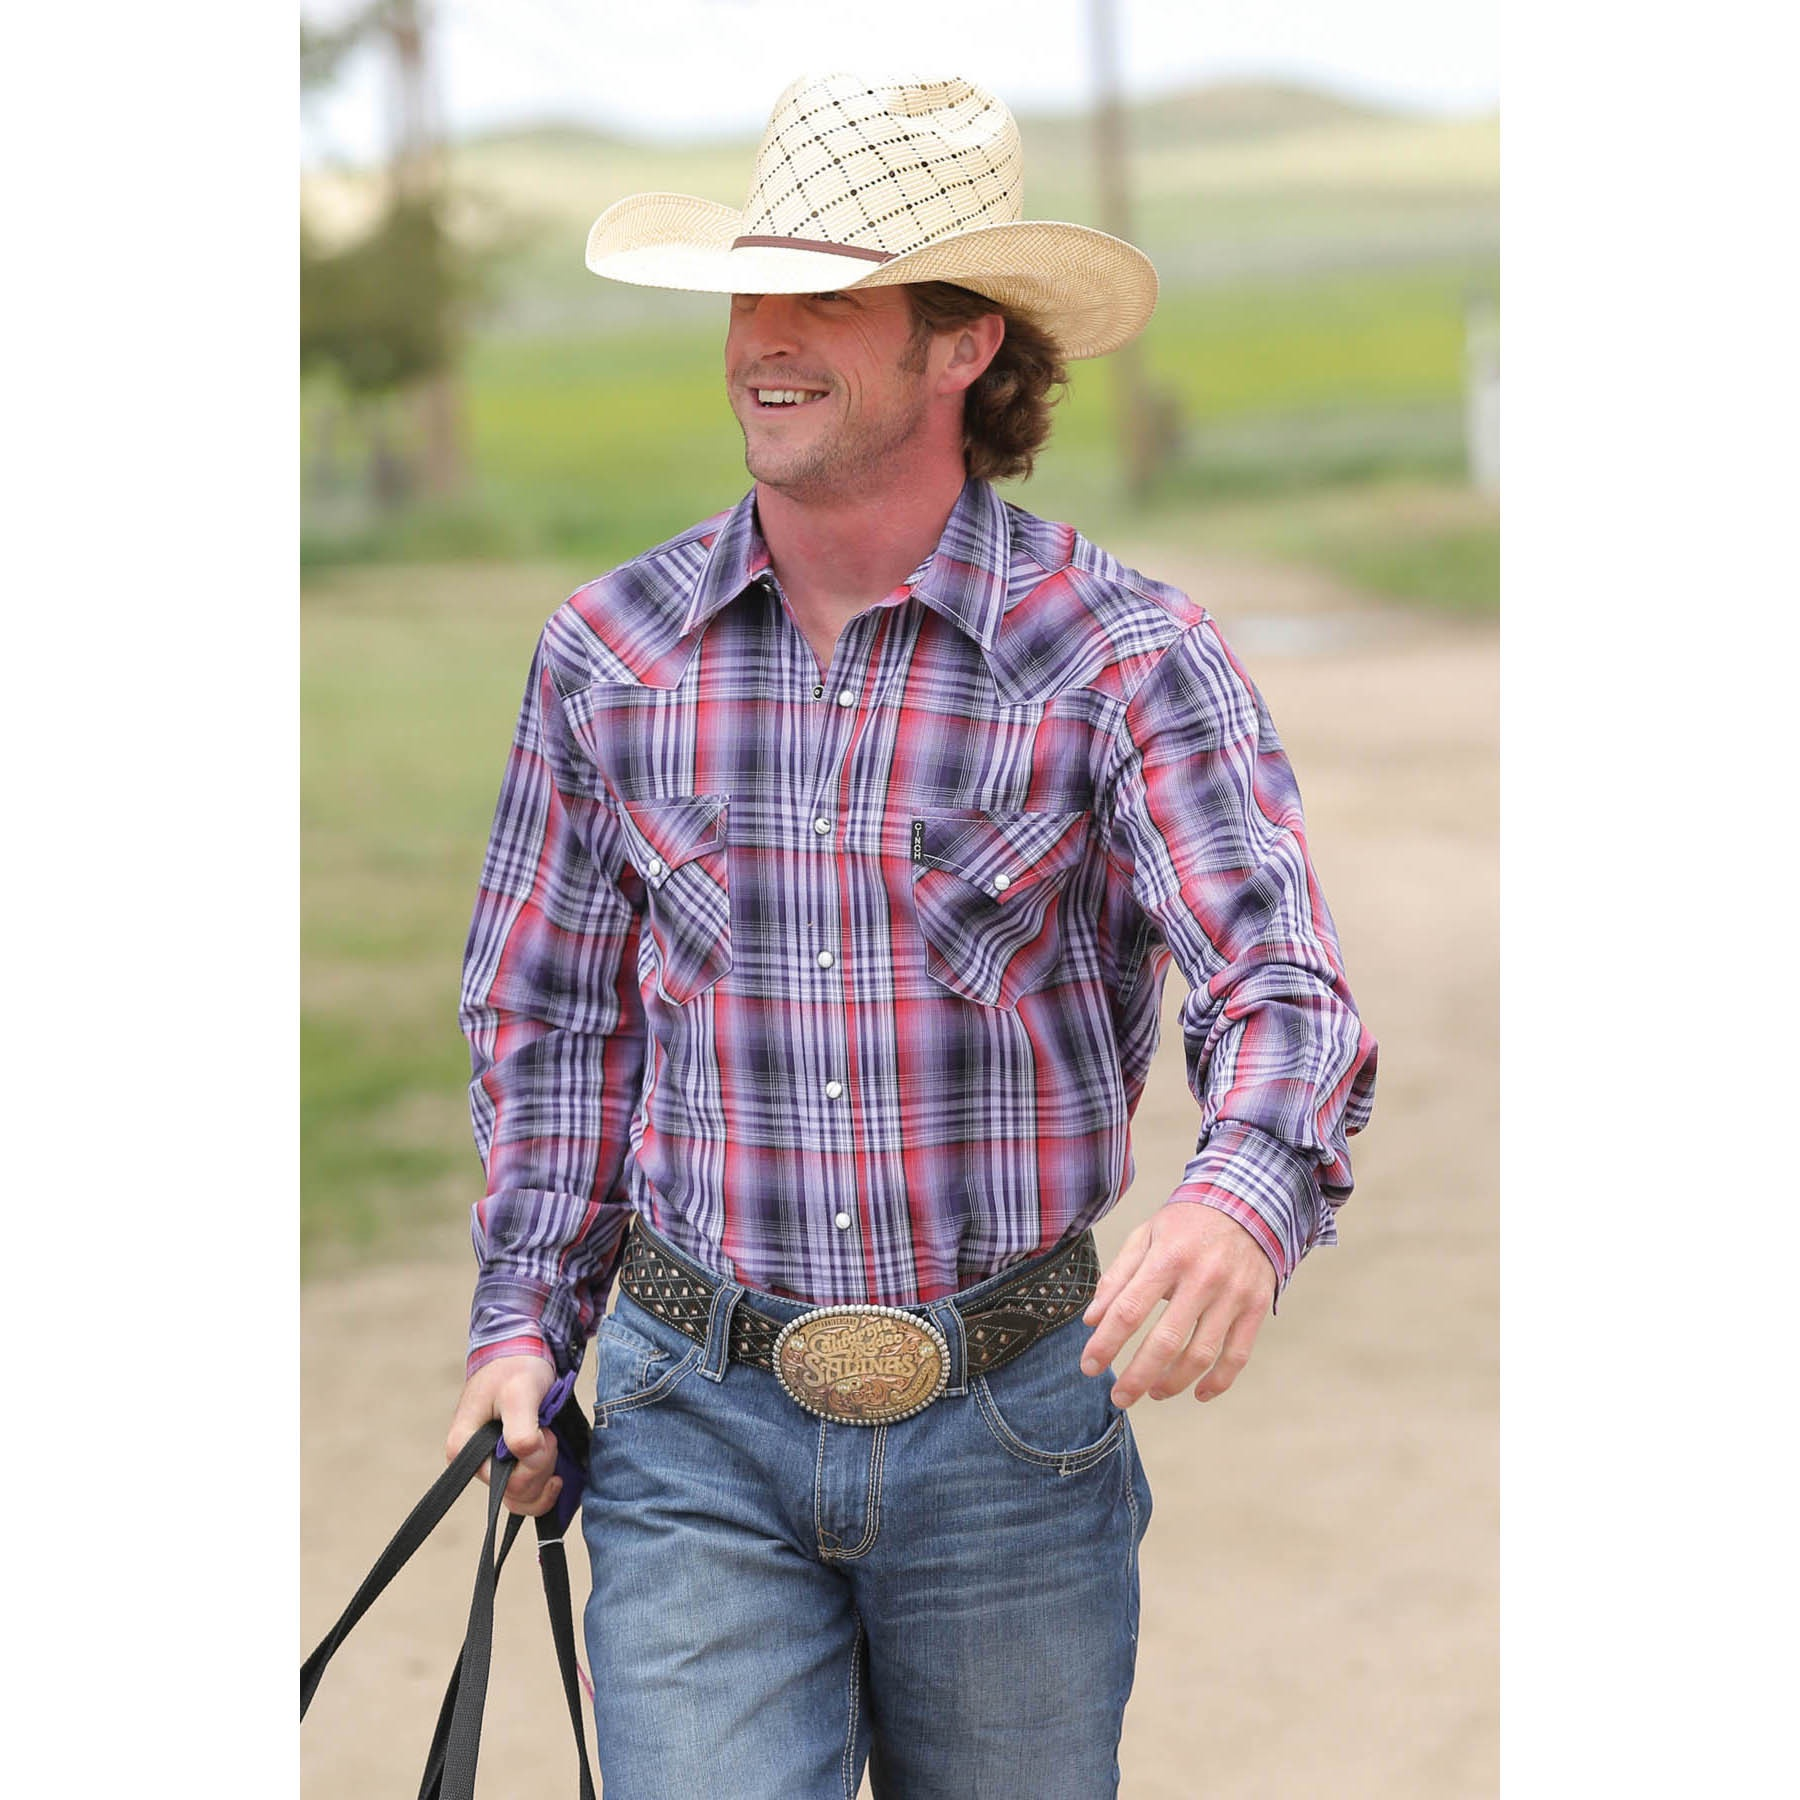 9a7171e3629 Cinch Men s Modern Fit Long Sleeve Shirt  Ryese  Purple Plaid Double  Pockets And Snap Buttons CLEARANCE!!